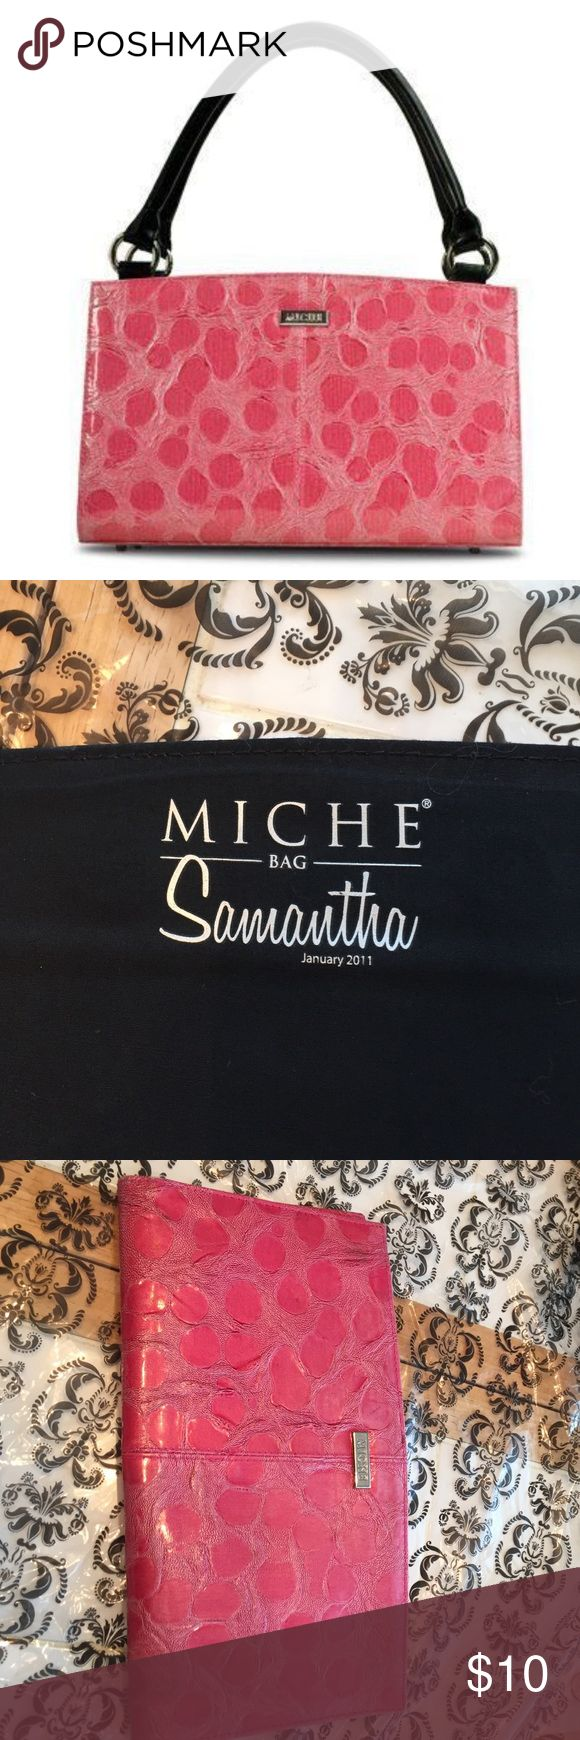 MICHE - Samantha Classic Shell - Retired 2011 Pretty bubble gum color. See imperfections last pic otherwise shell in good condition. Miche Bags